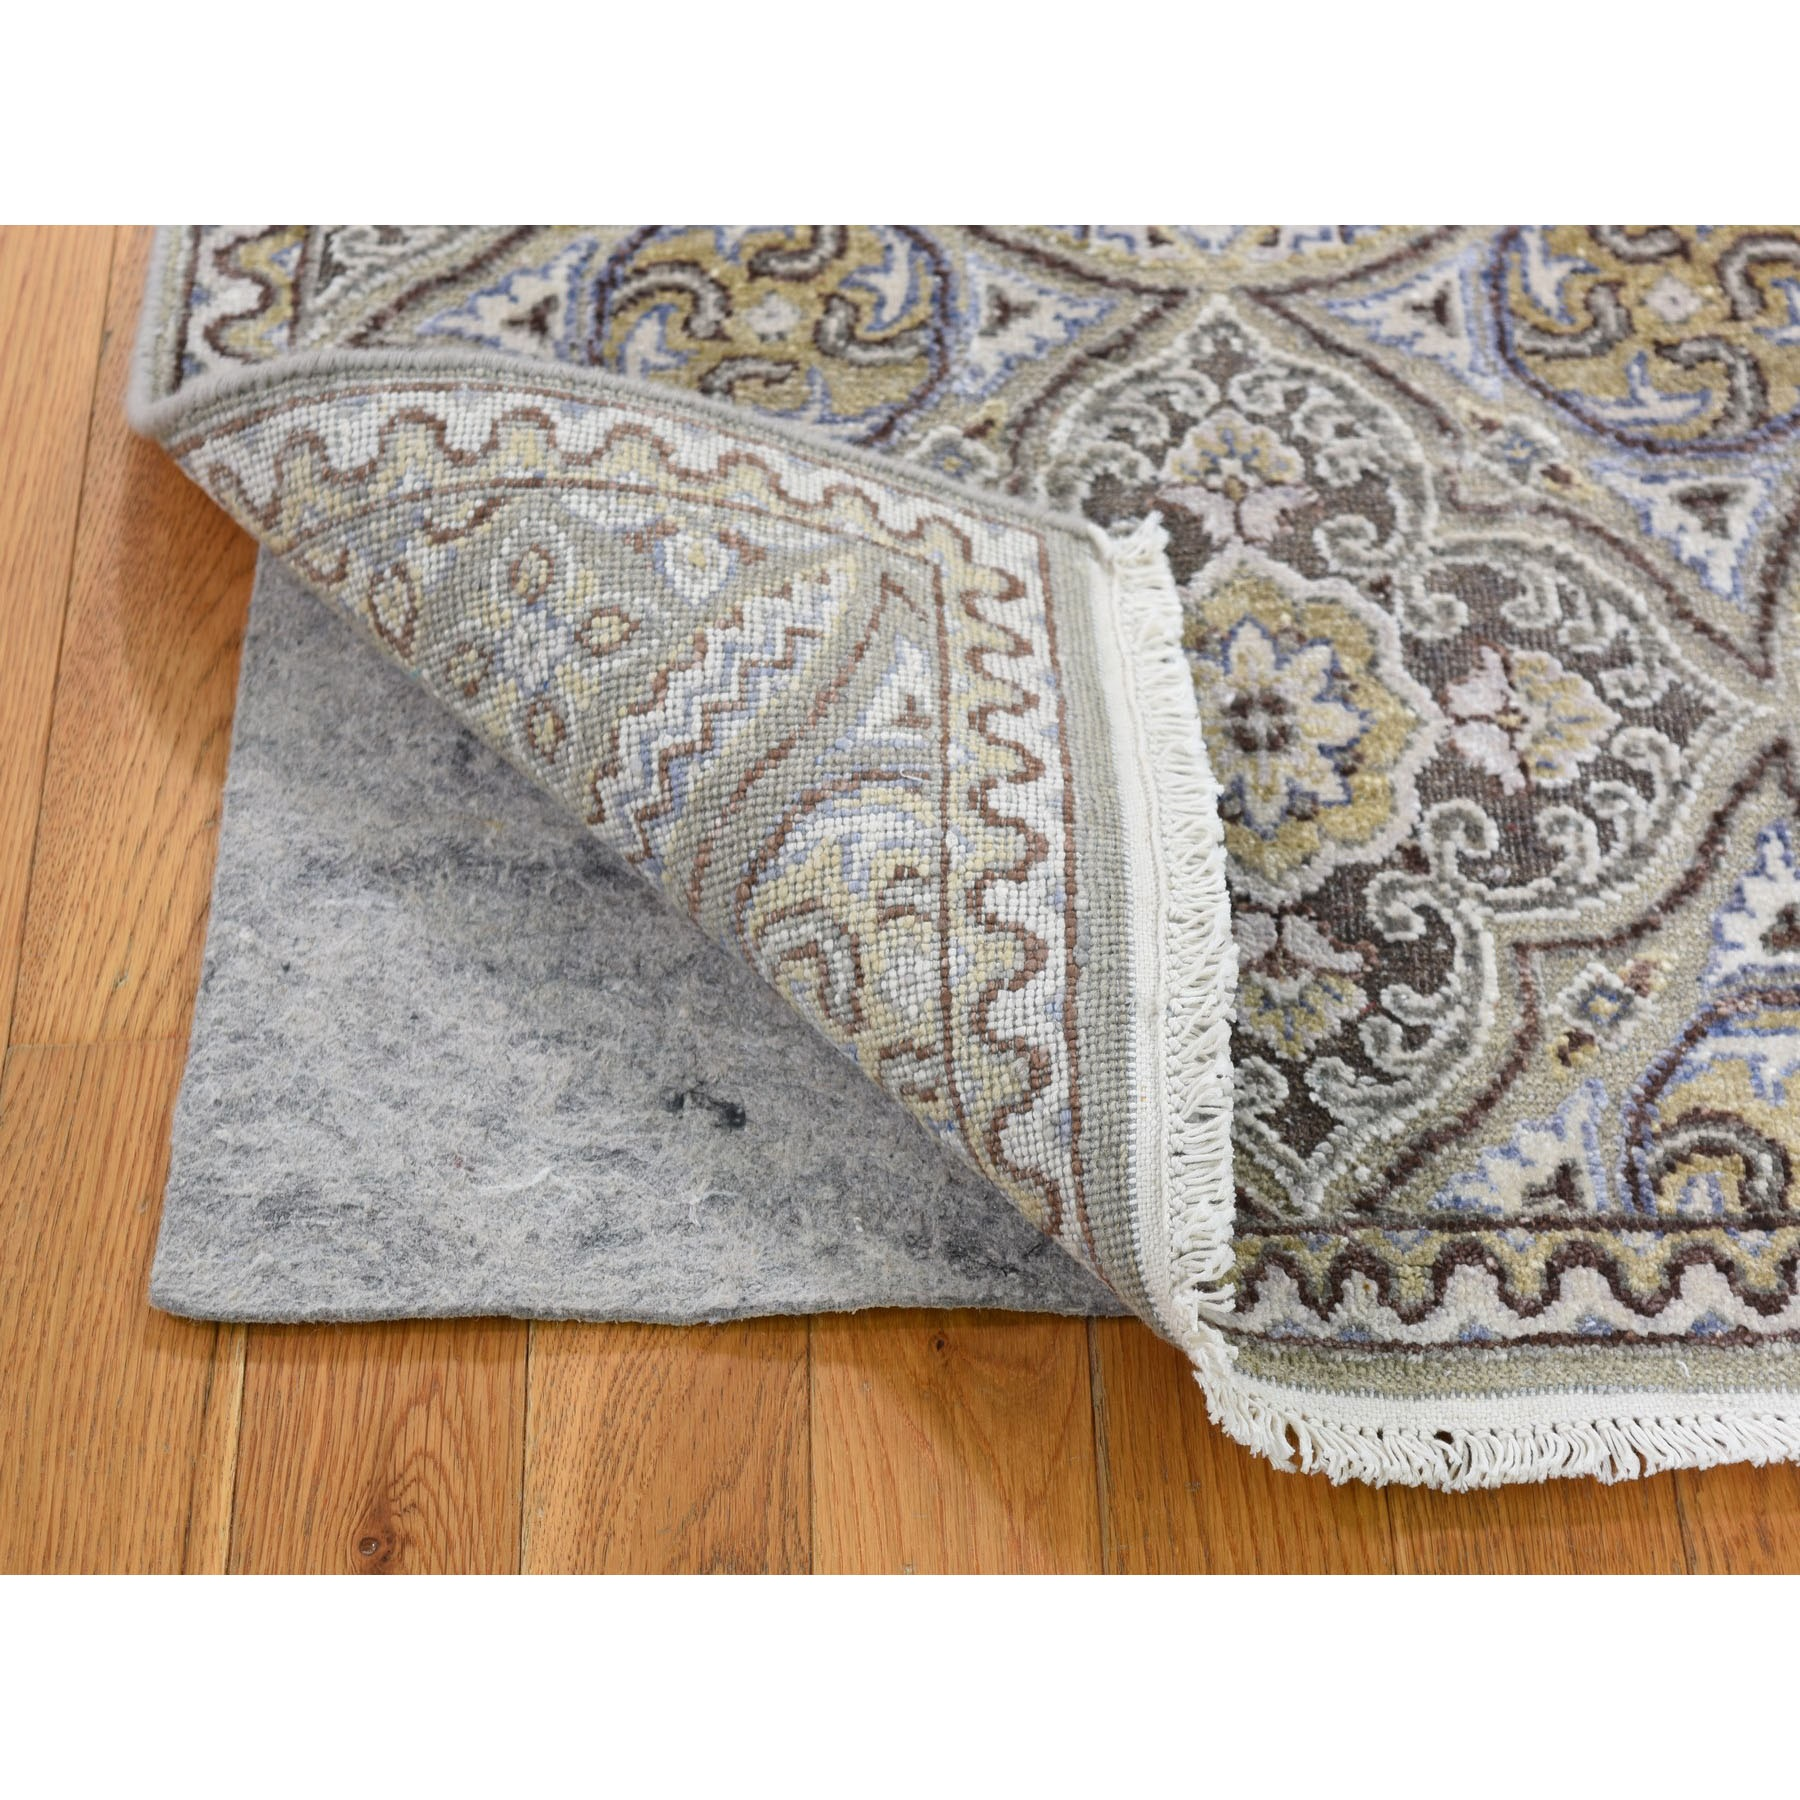 2-6 x6- Textured Wool and Silk Mughal Inspired Medallions Runner Oriental Rug